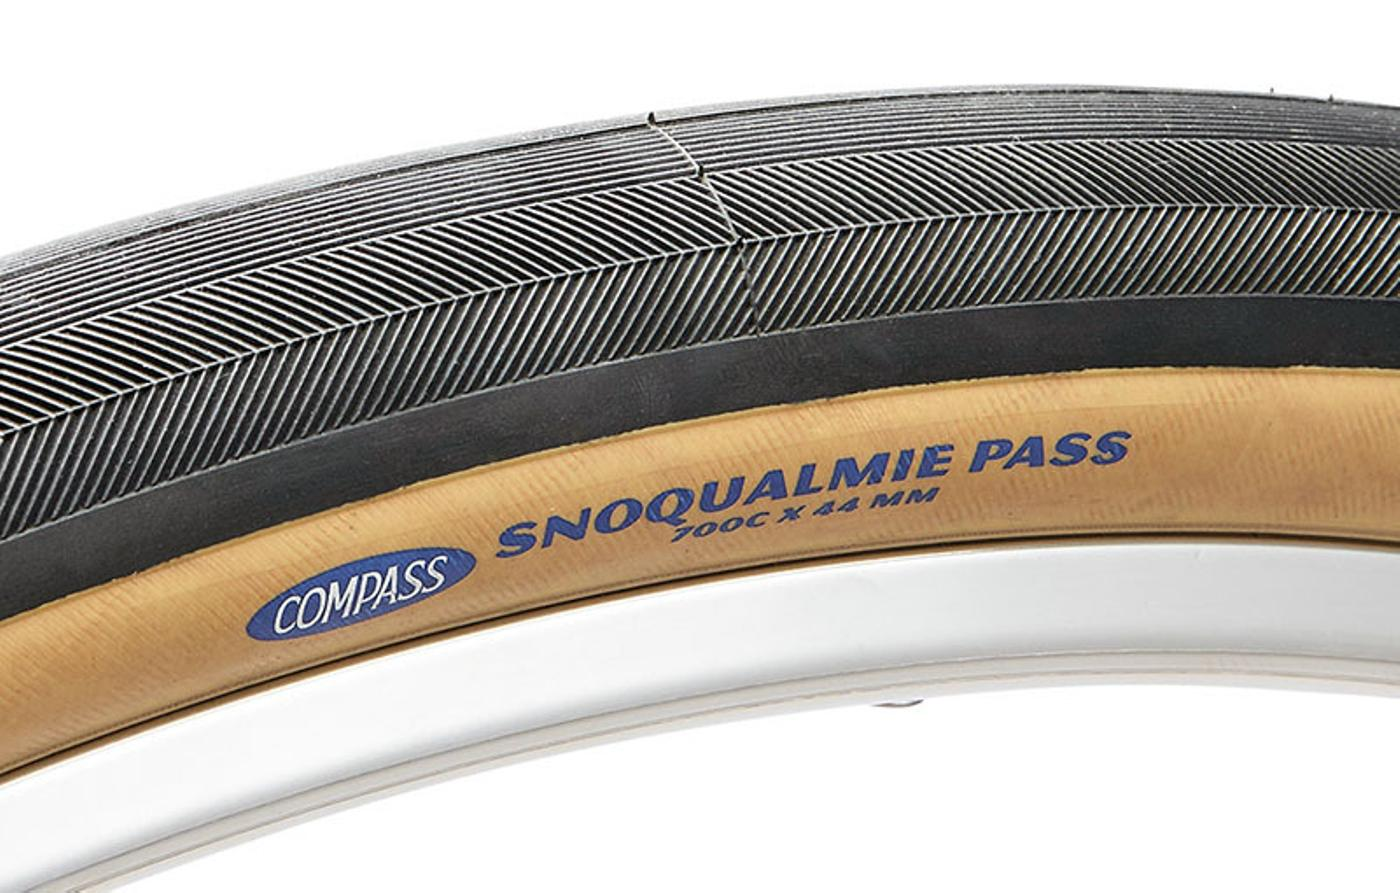 Compass Fattens up their 700c Offering with the Snoqualmie Pass